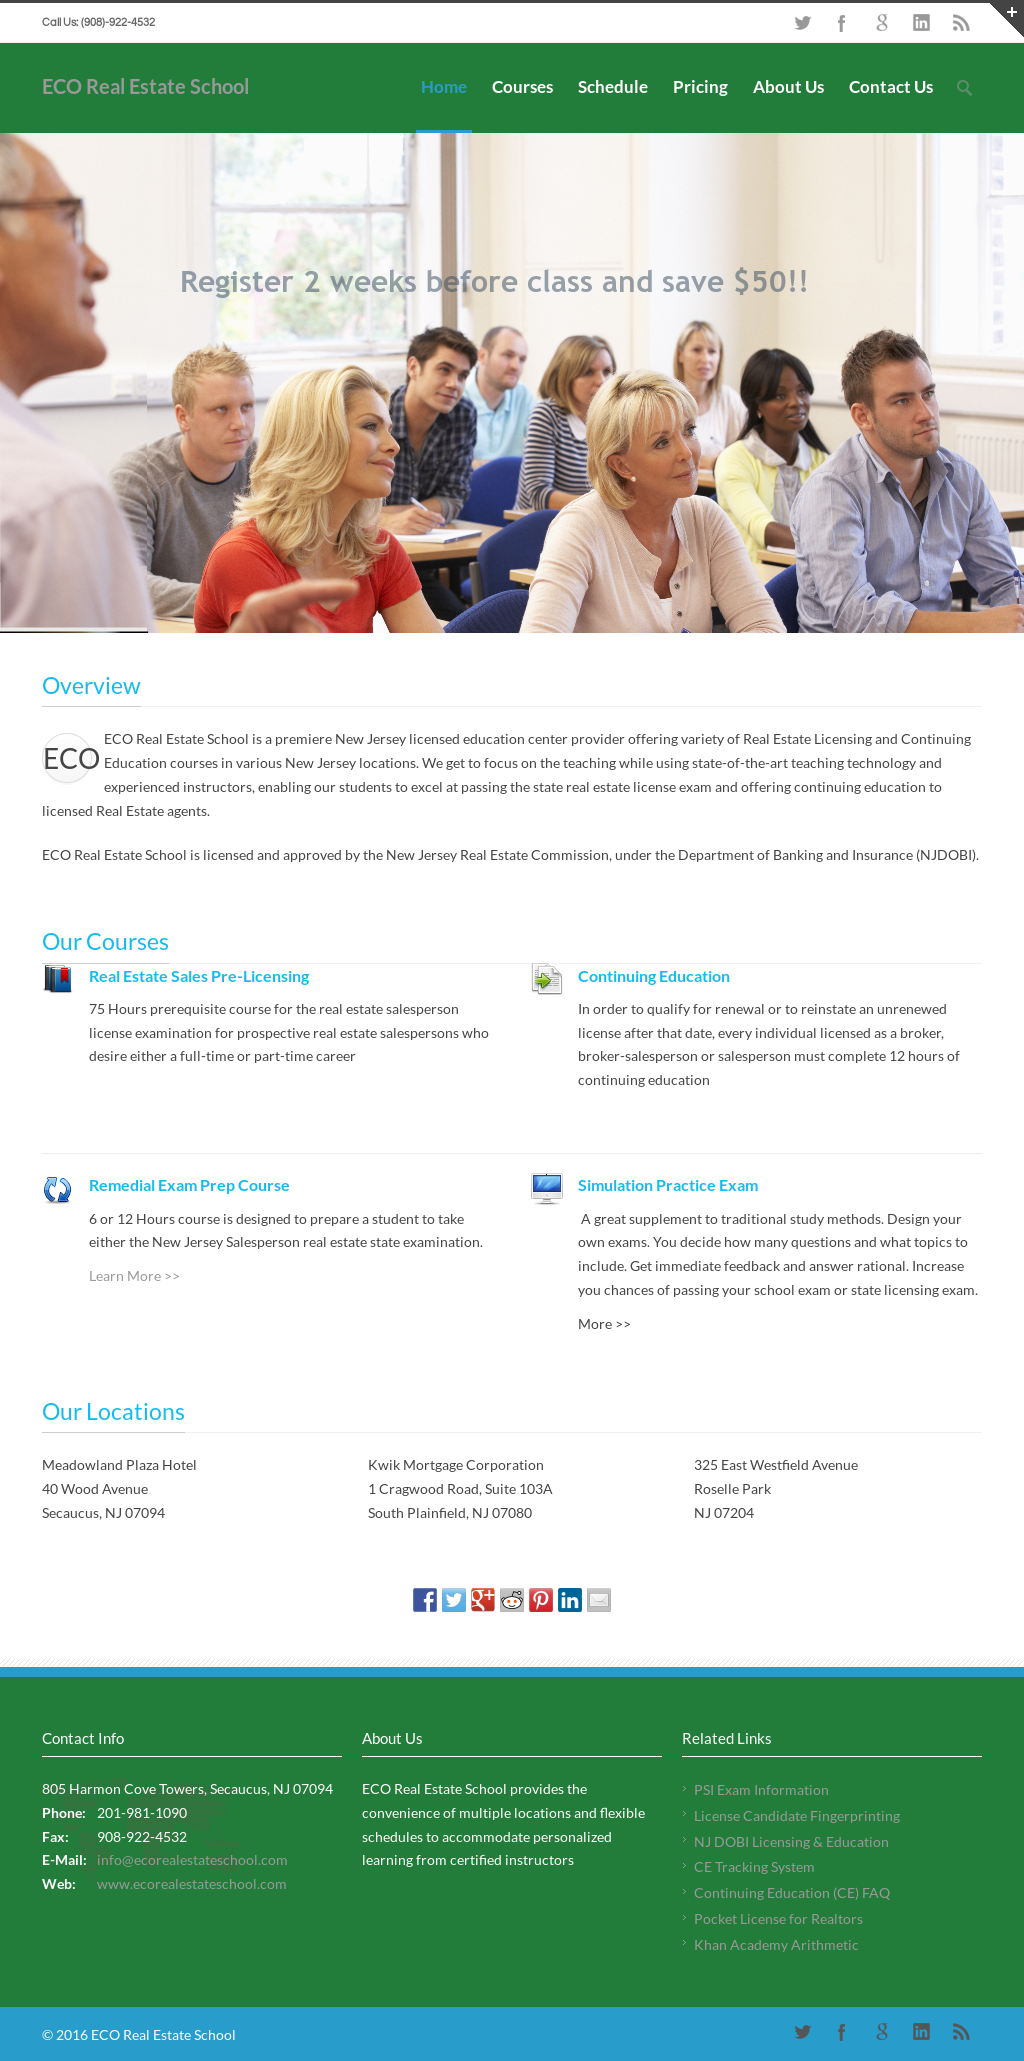 Eco Real Estate School Competitors, Revenue and Employees